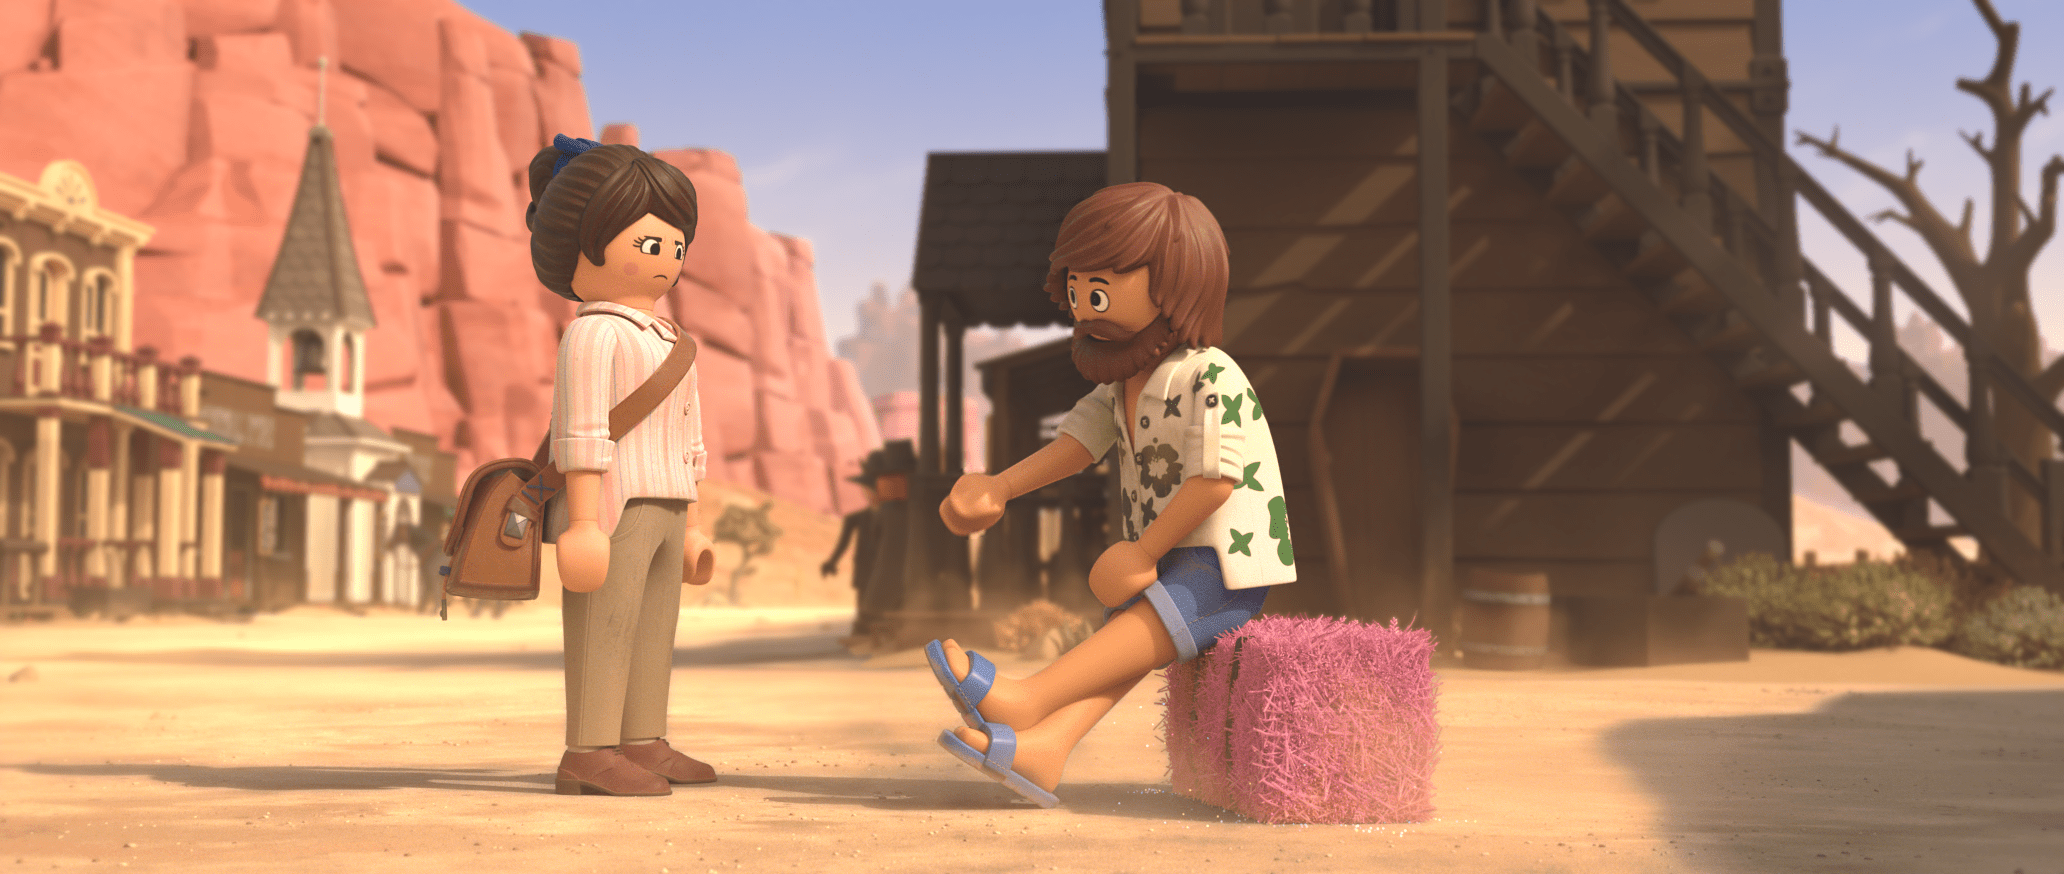 Playmobil: The Movie recensione